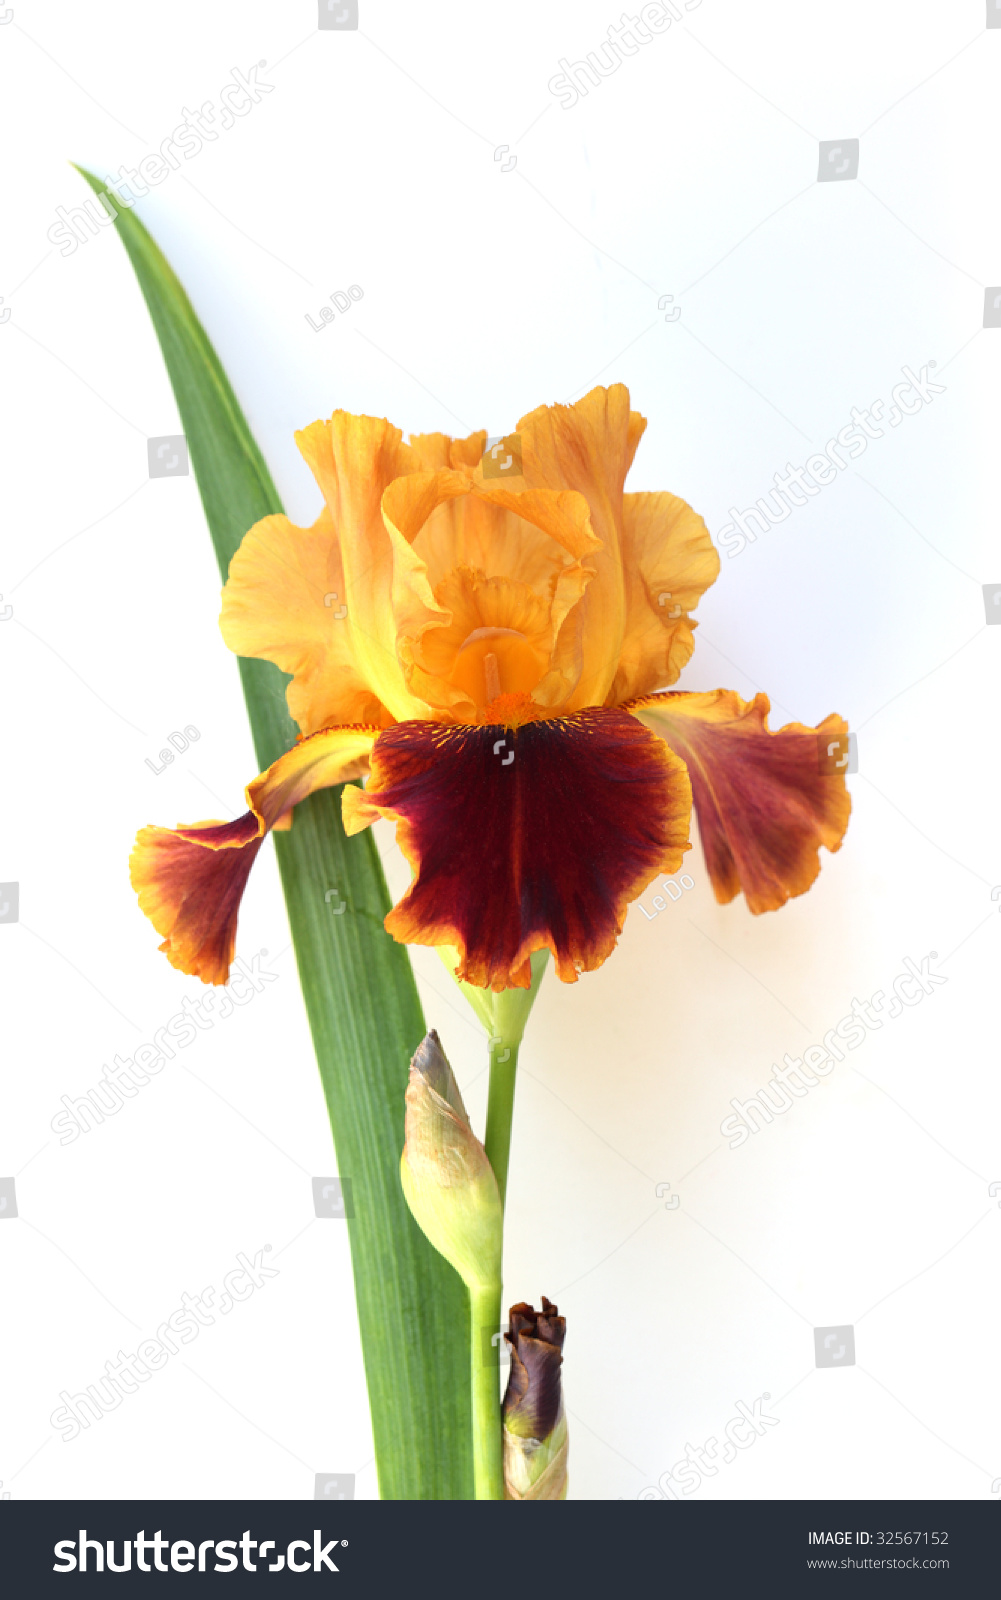 Yellow red iris flower plant isolated stock photo 32567152 yellow red iris flower plant isolated on white background izmirmasajfo Images